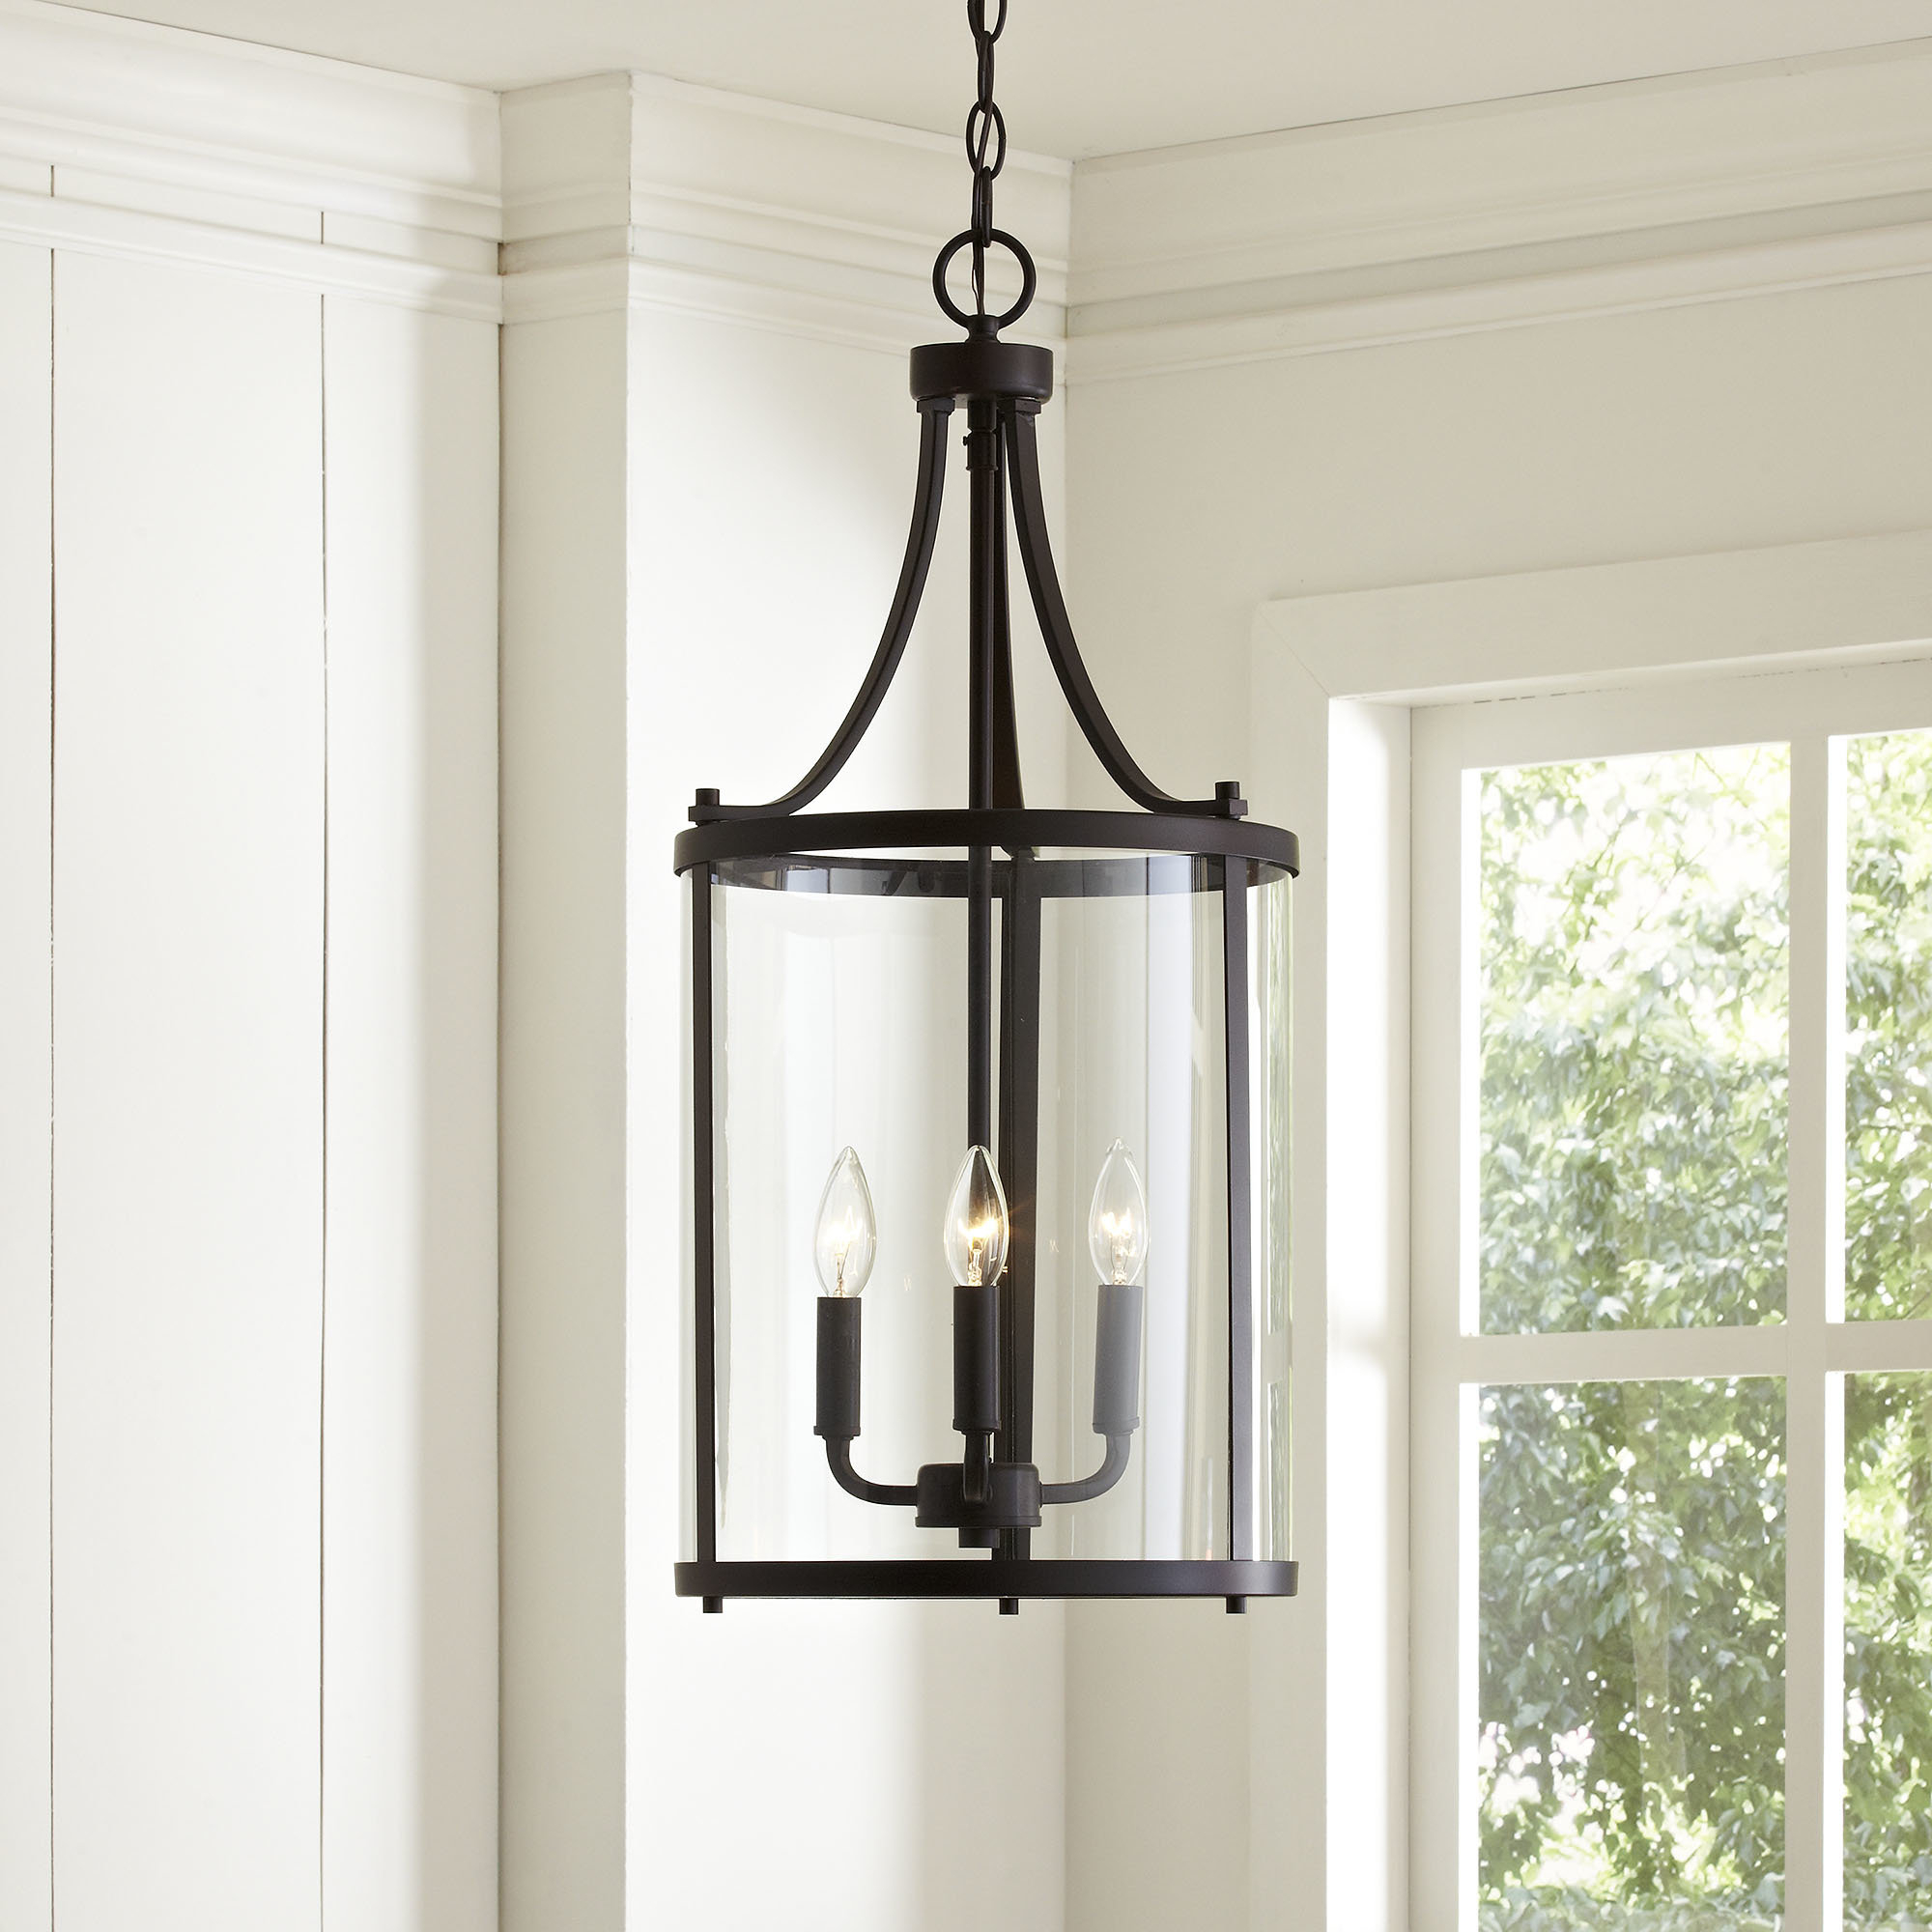 Popular 3 Light Lantern Cylinder Pendant For Gabriella 3 Light Lantern Chandeliers (View 16 of 20)